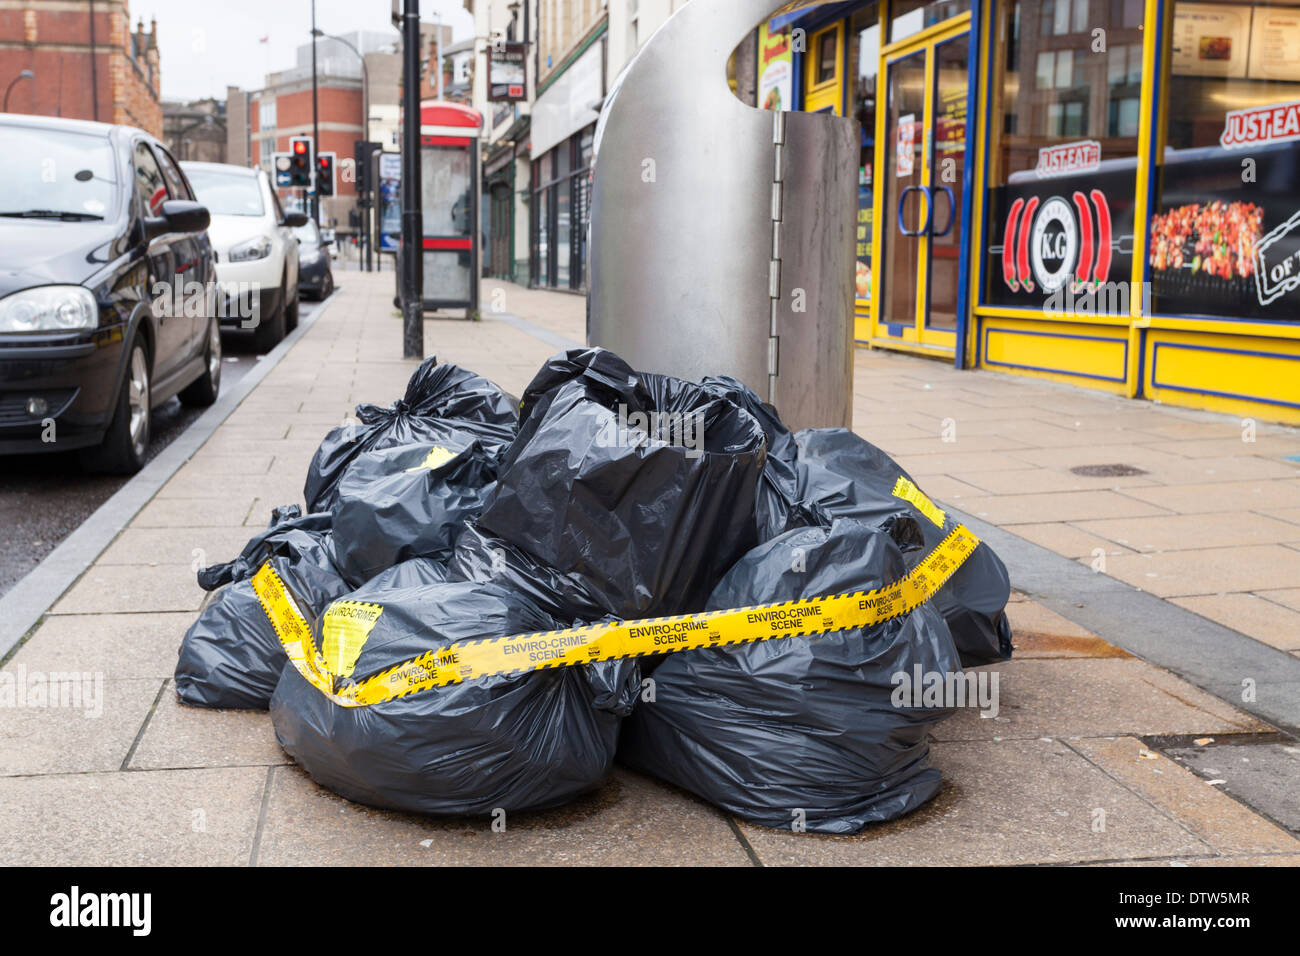 Illegal dumping of bags of waste. Enviro crime scene tape attached. Fly tipping rubbish on a street in Sheffield, England, UK - Stock Image